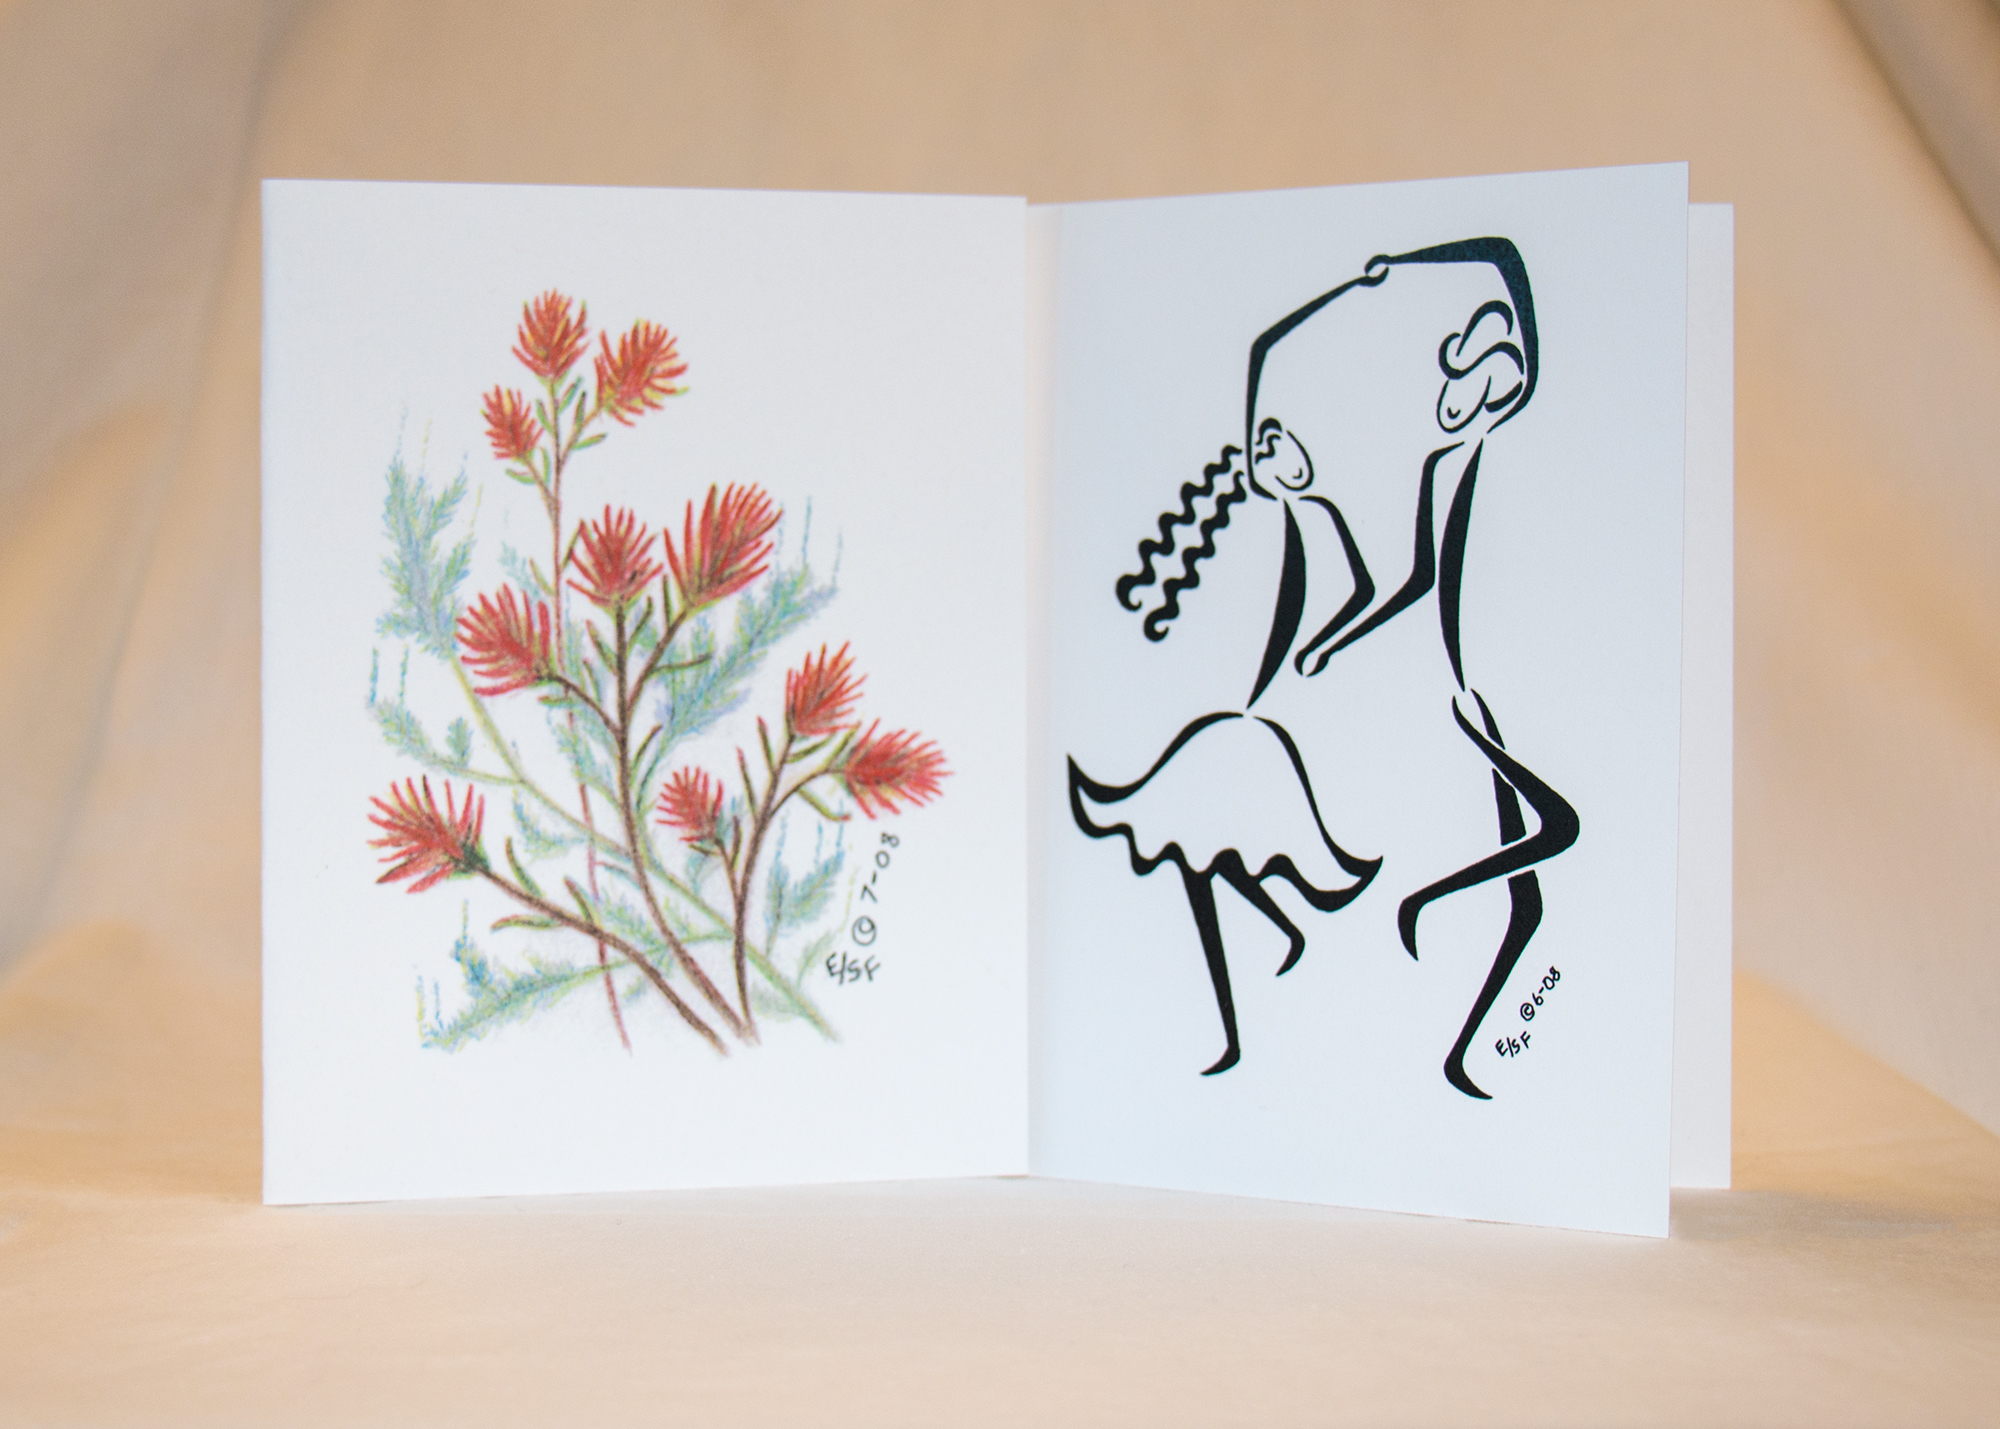 Made in wyoming program elaine thought greeting cards were getting expensive so she started drawing her own scenes for cards to send to family and friends m4hsunfo